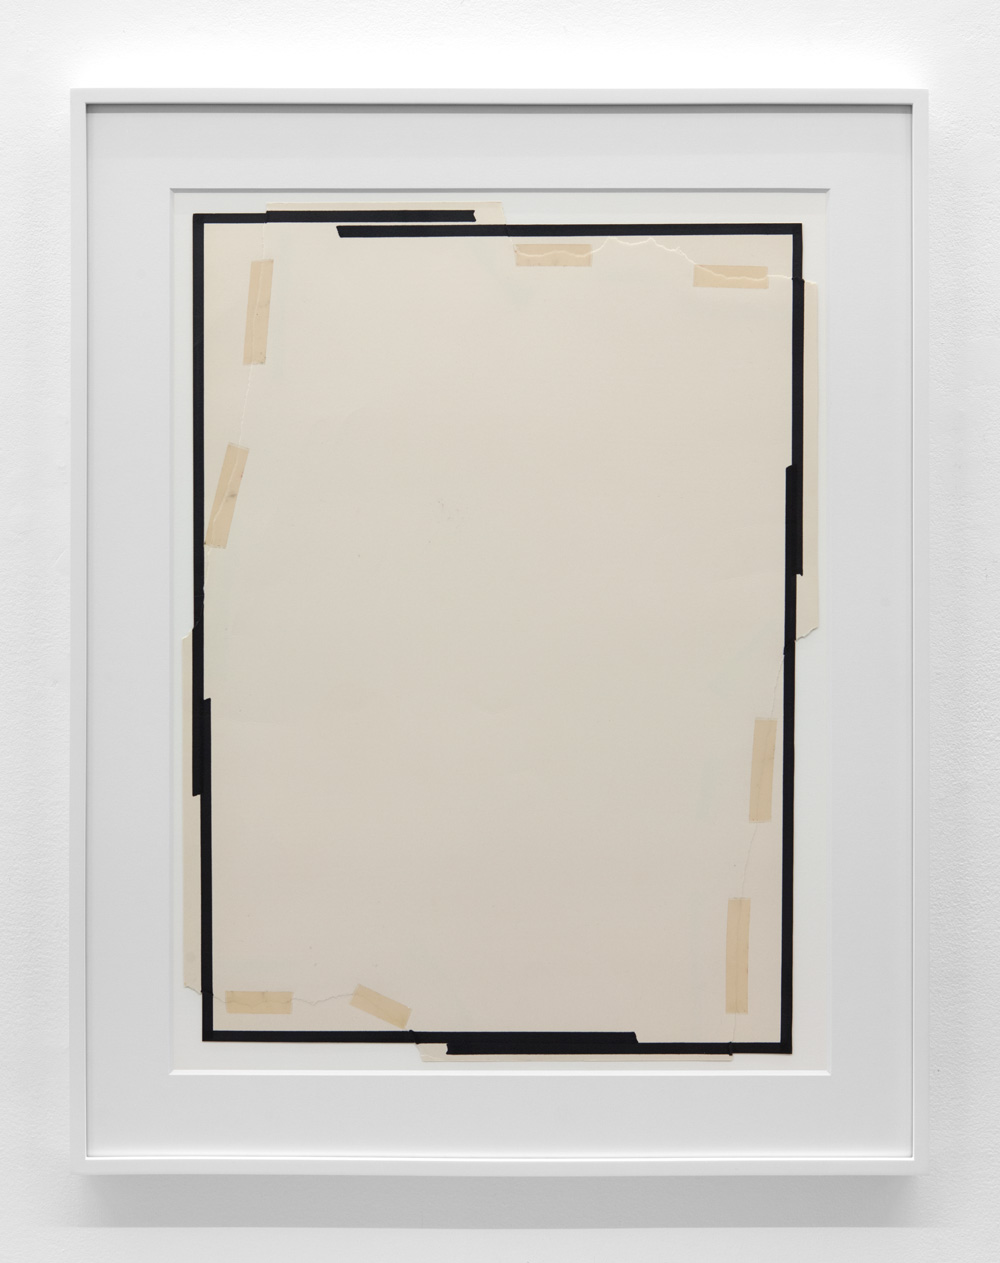 Lateral Space 074 , 1974 Magic marker and tape on paper 27 15/16 x 20 3/4 inches  71 x 52.7 cm